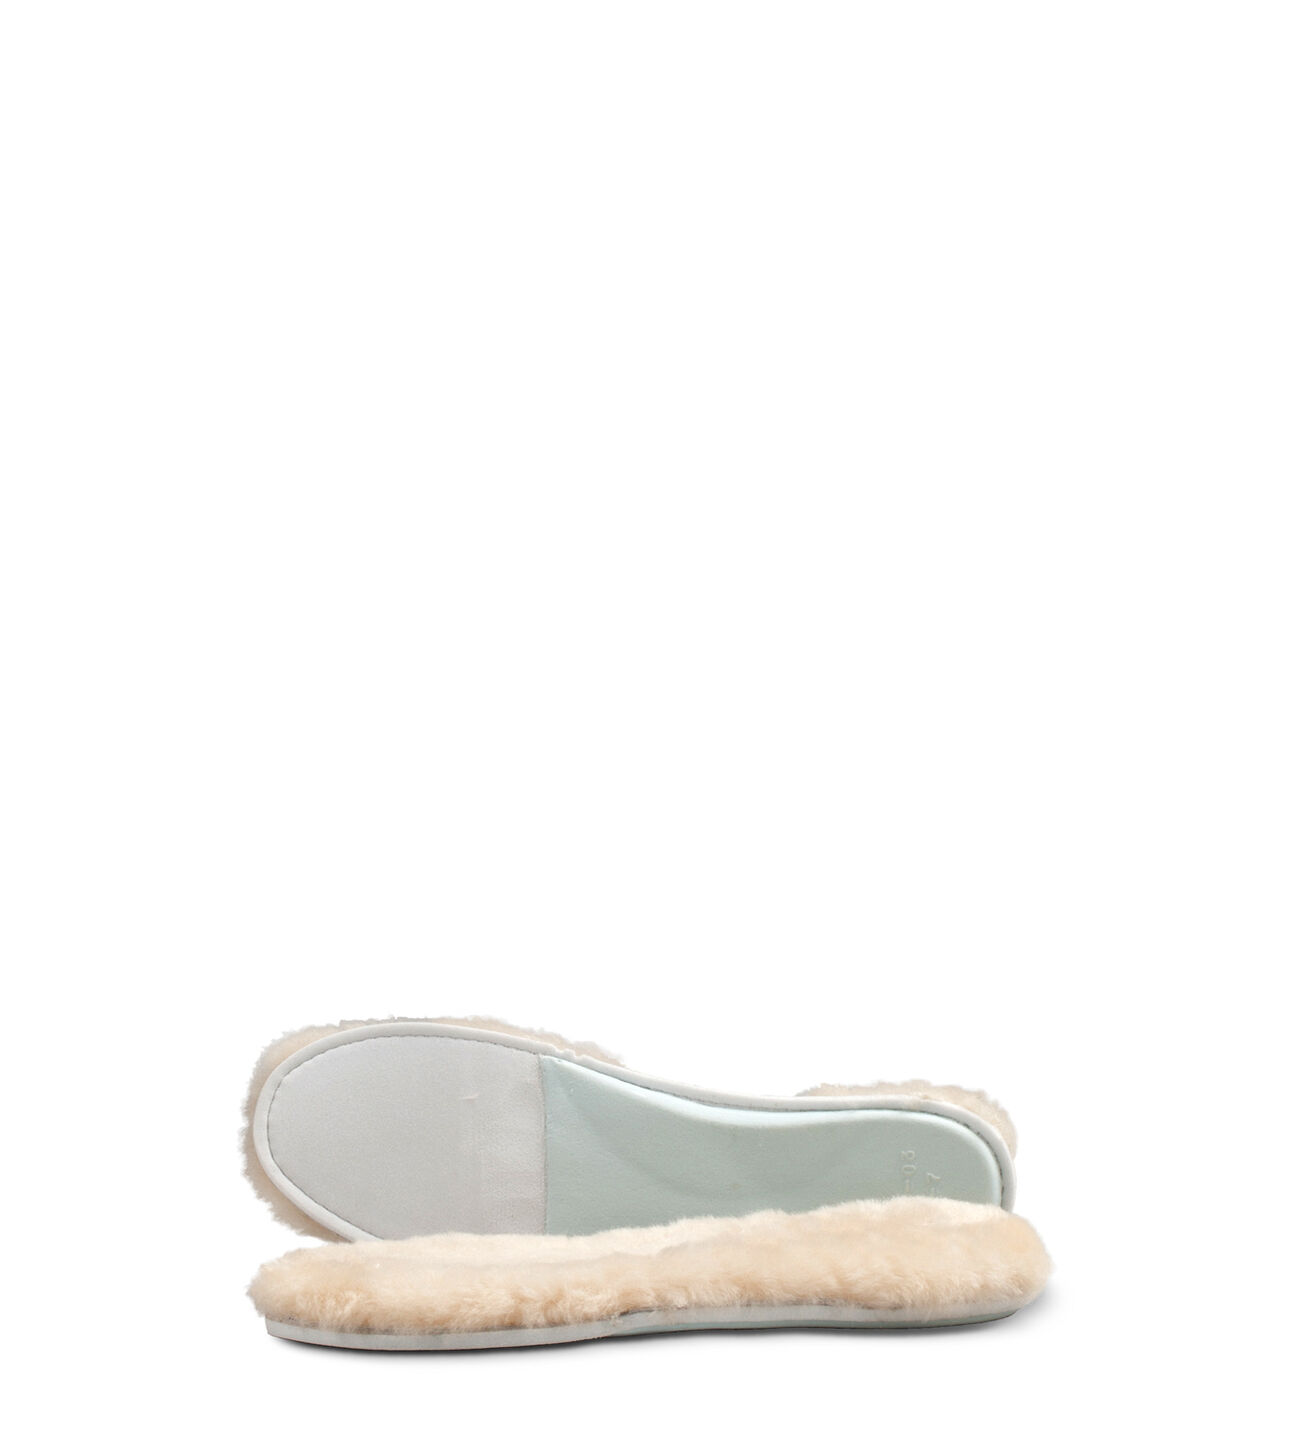 ugg ascot insole replacement